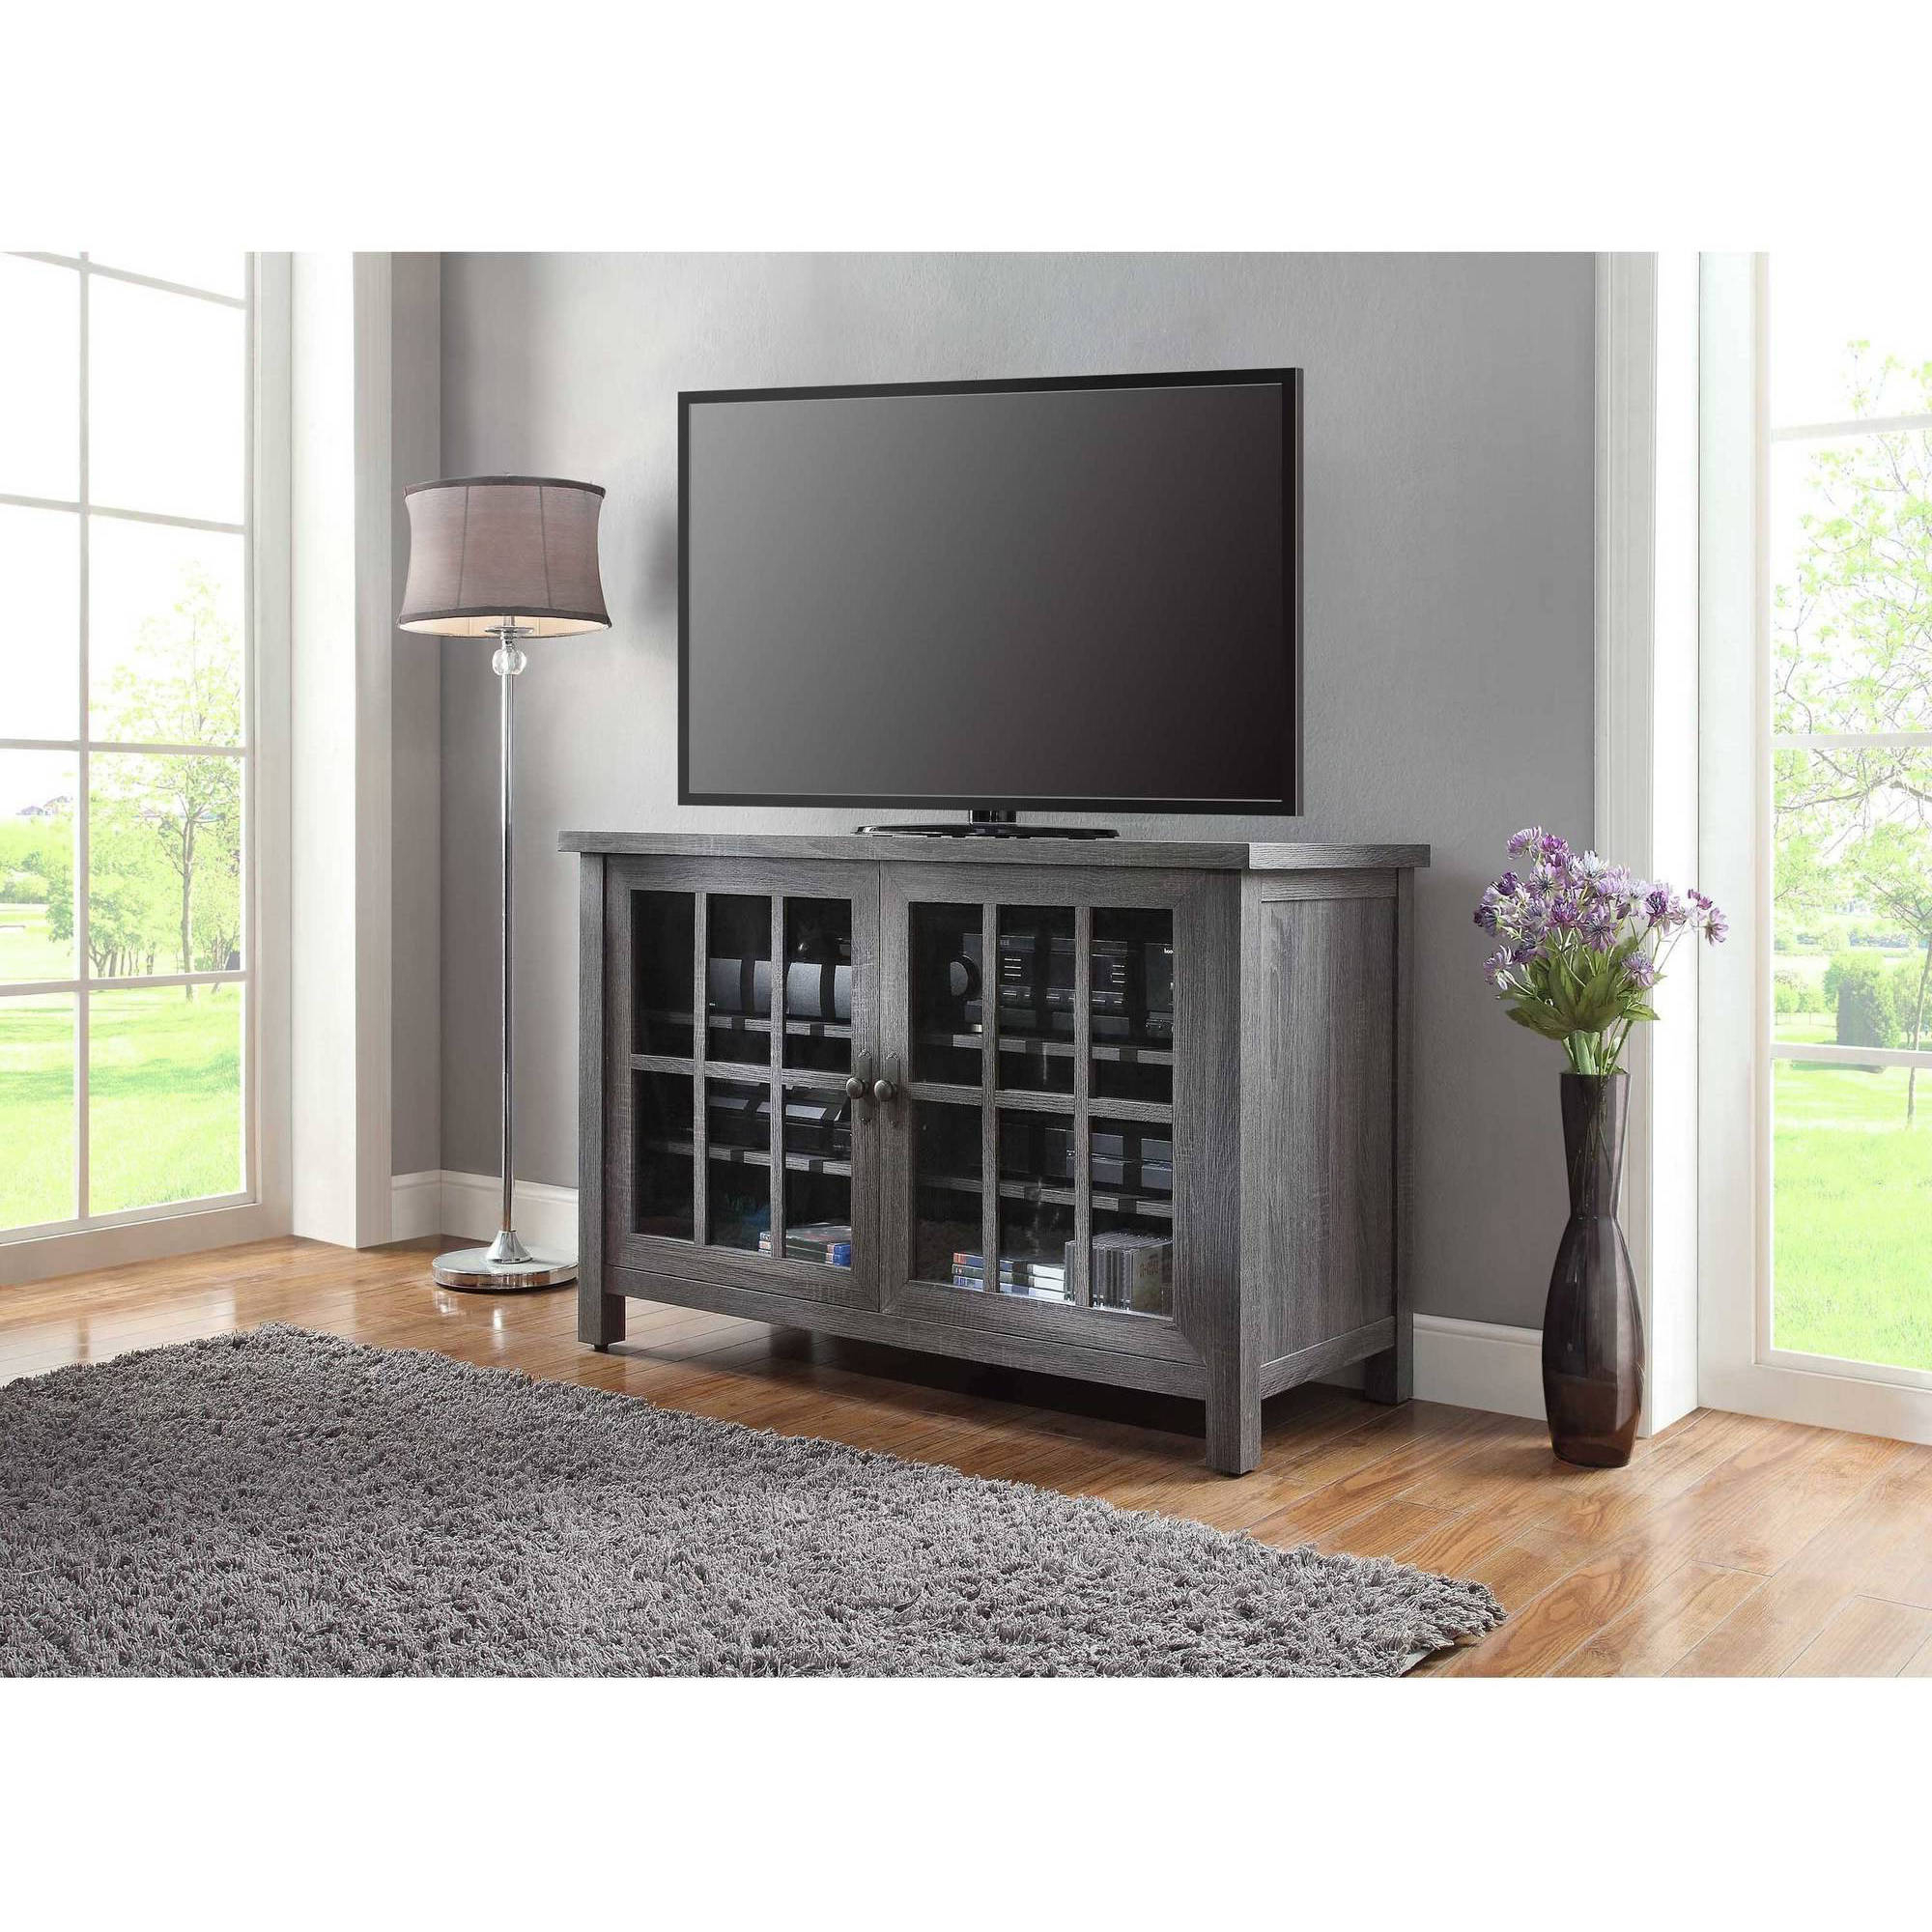 Better Homes And Gardens Oxford Square Tv Console For Tvs Up To 55 Regarding Oxford 84 Inch Tv Stands (View 3 of 20)